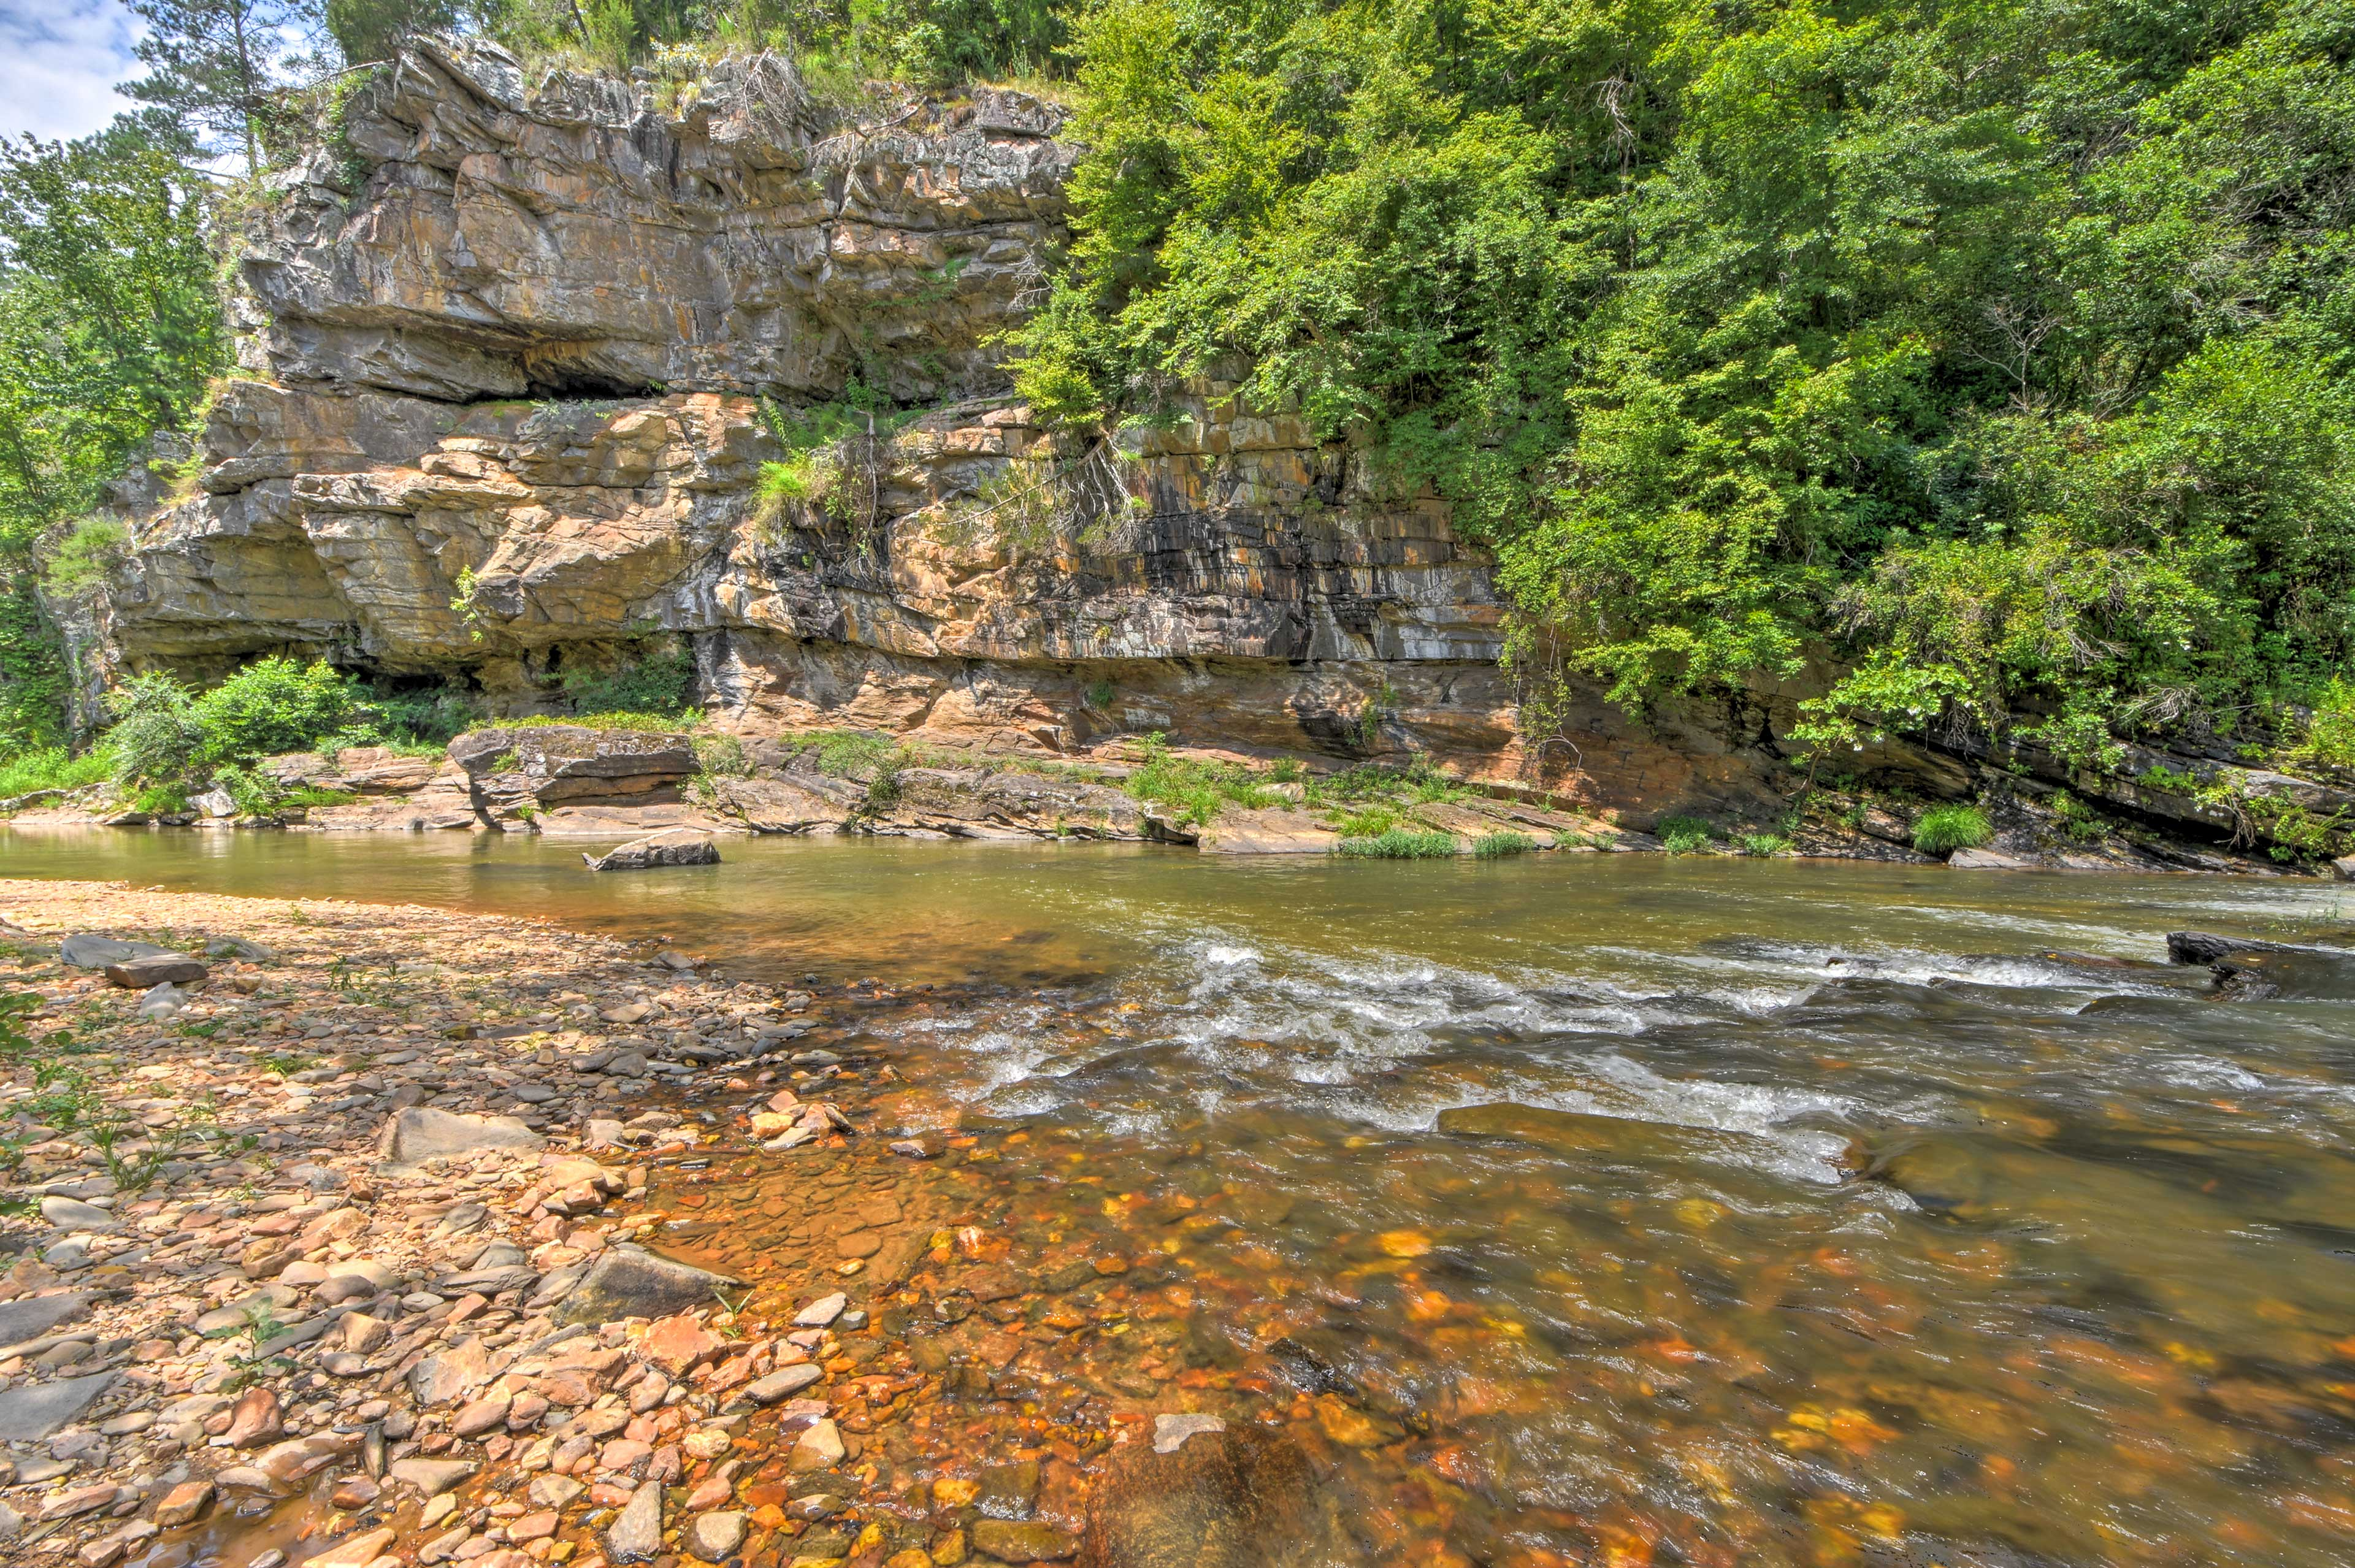 Spend relaxing hours listening to the sounds of Talking Rock Creek!